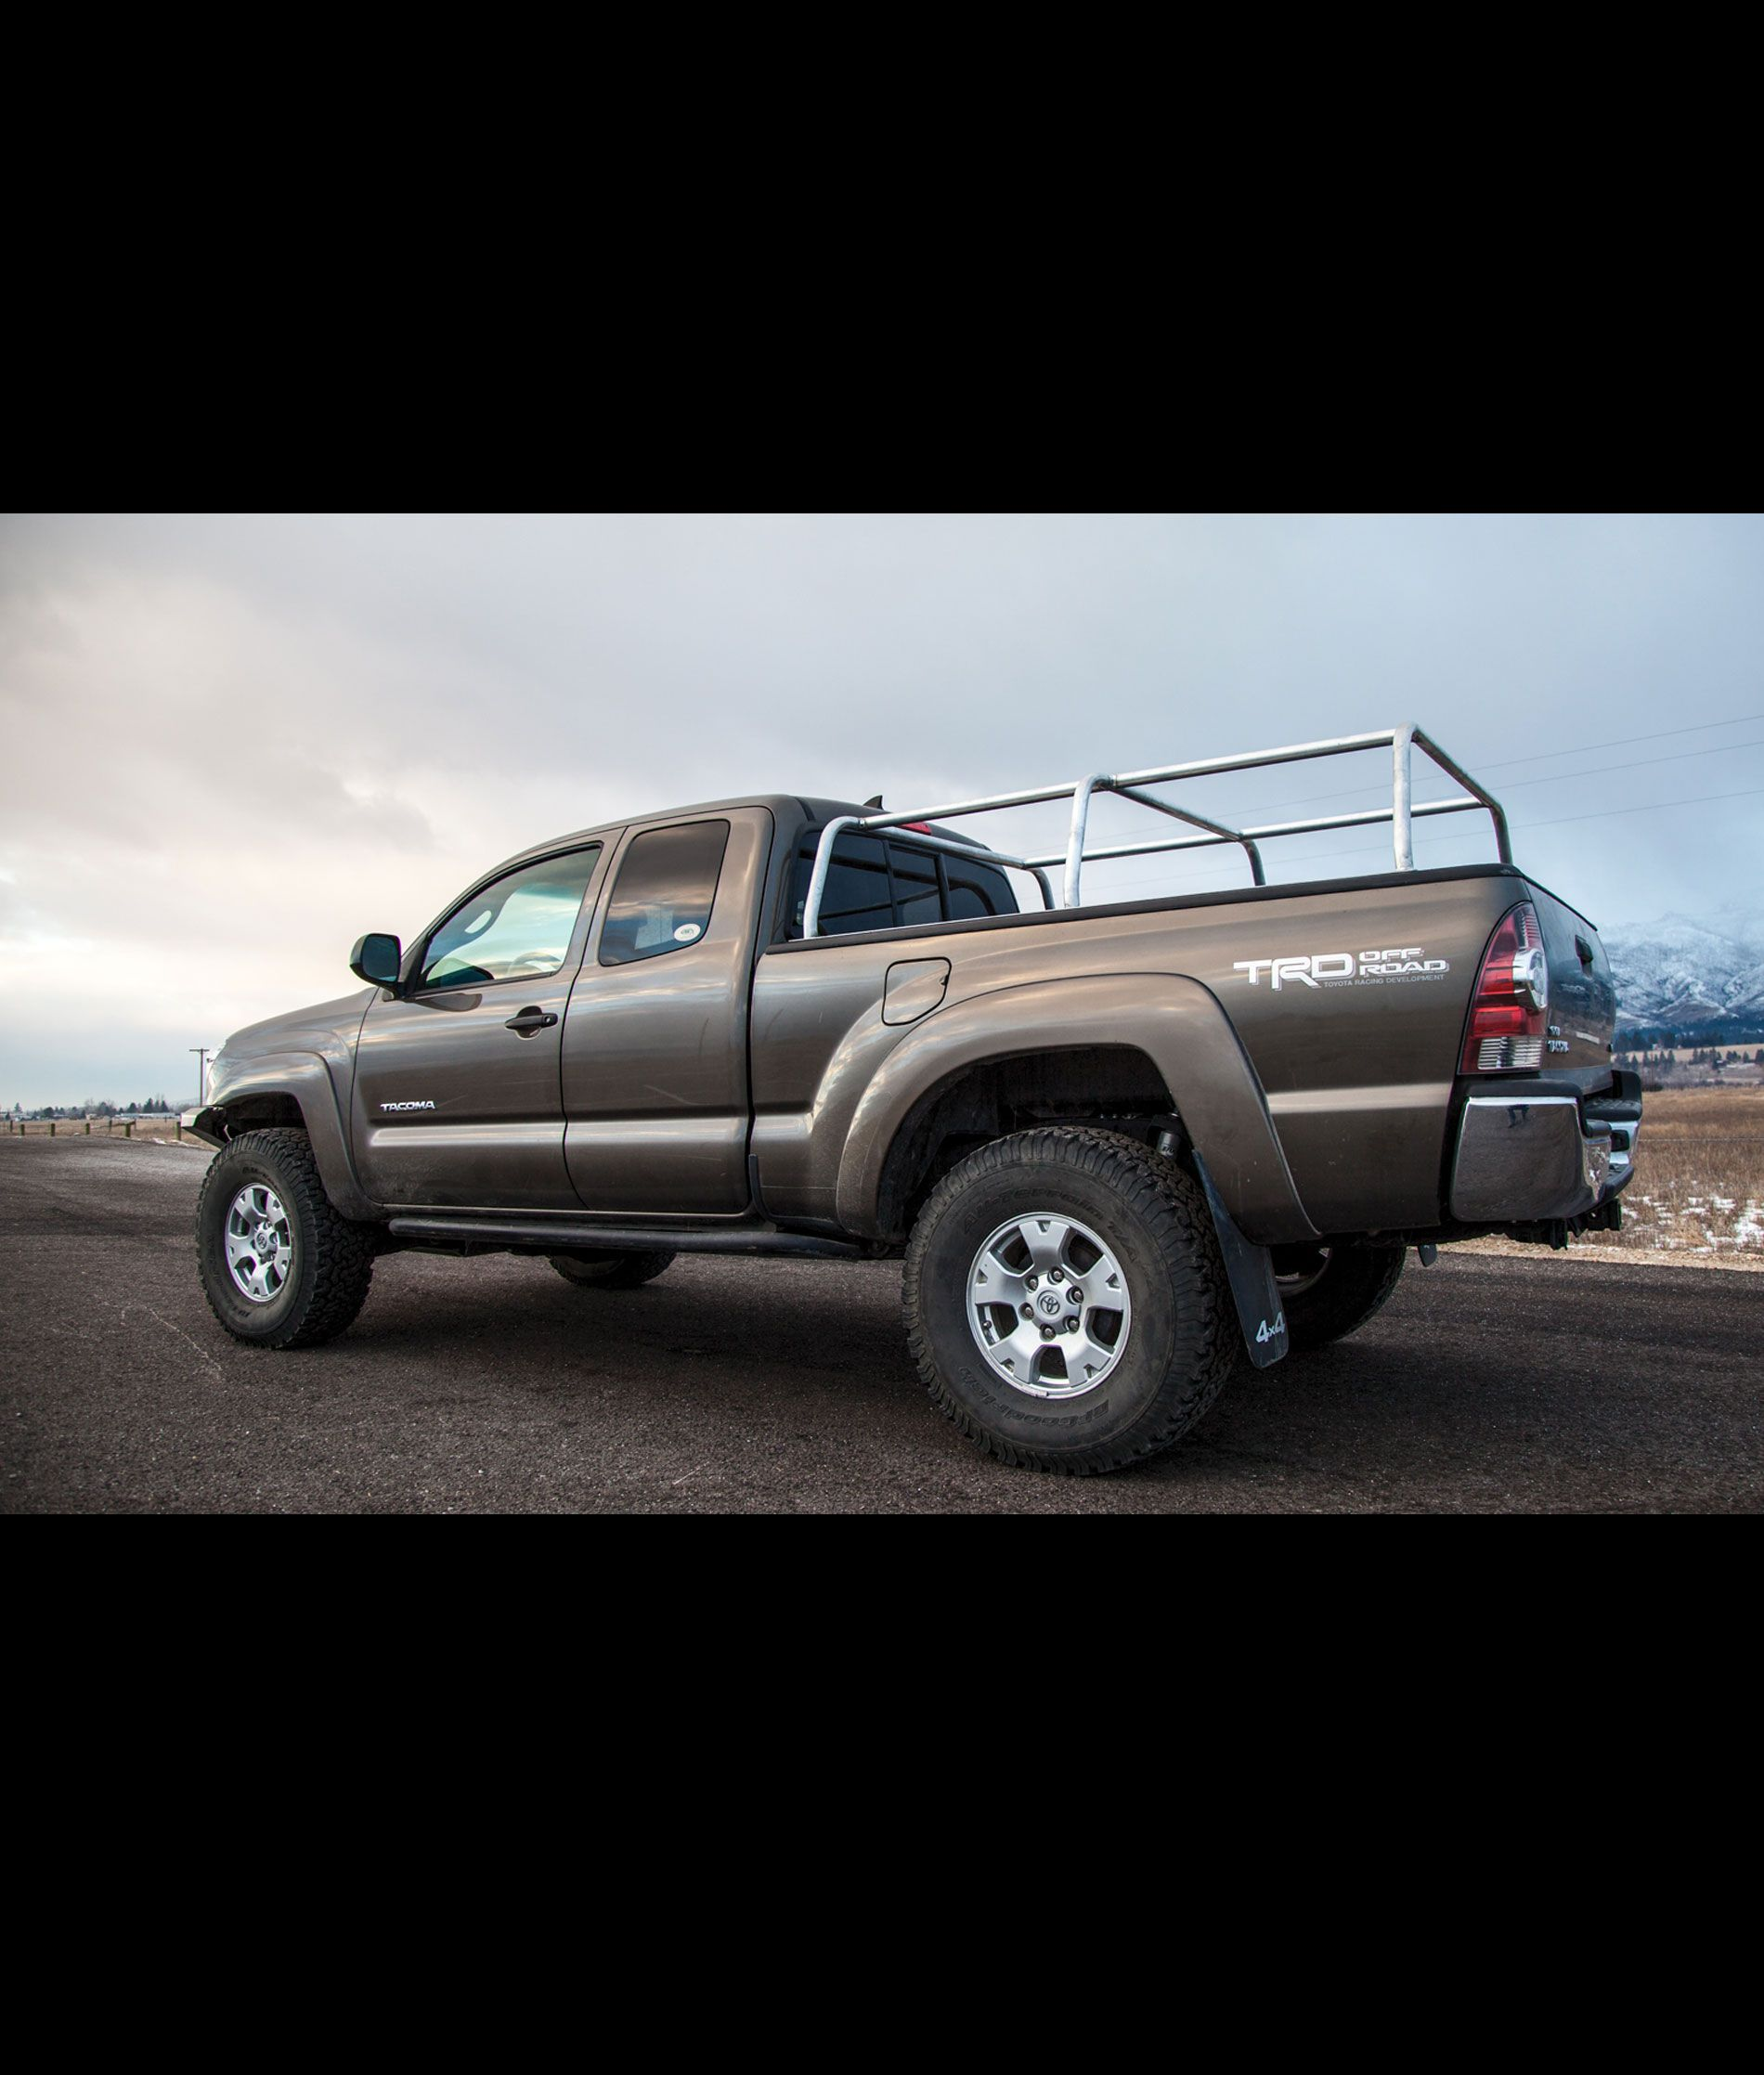 0515 APEX Steel Pack Rack KIT Roof top tent, Top